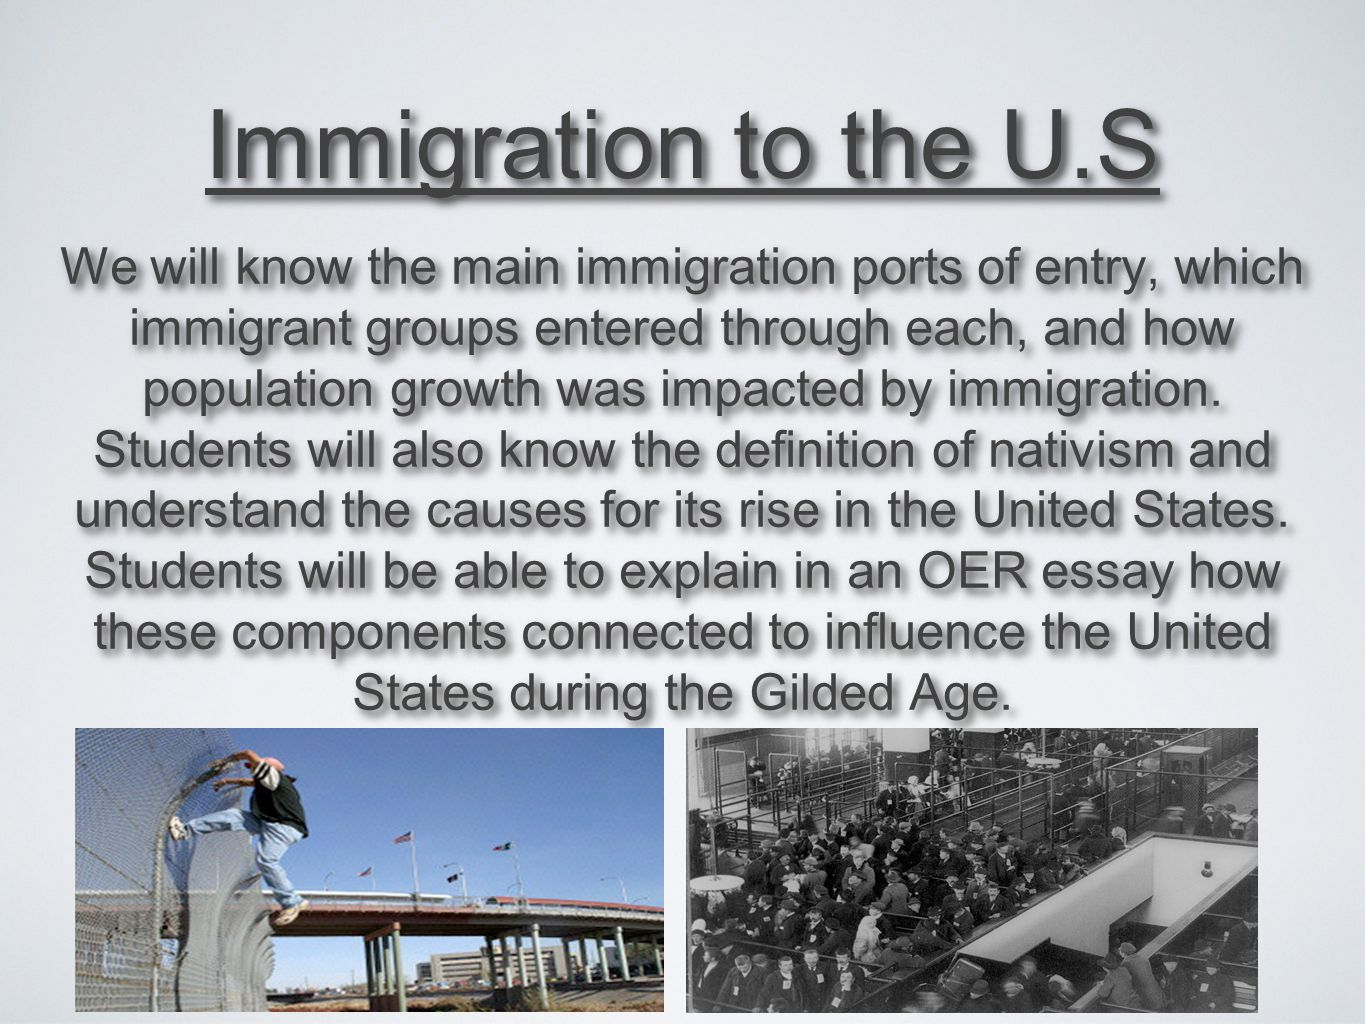 immigration to the u.s we will know the main immigration ports of